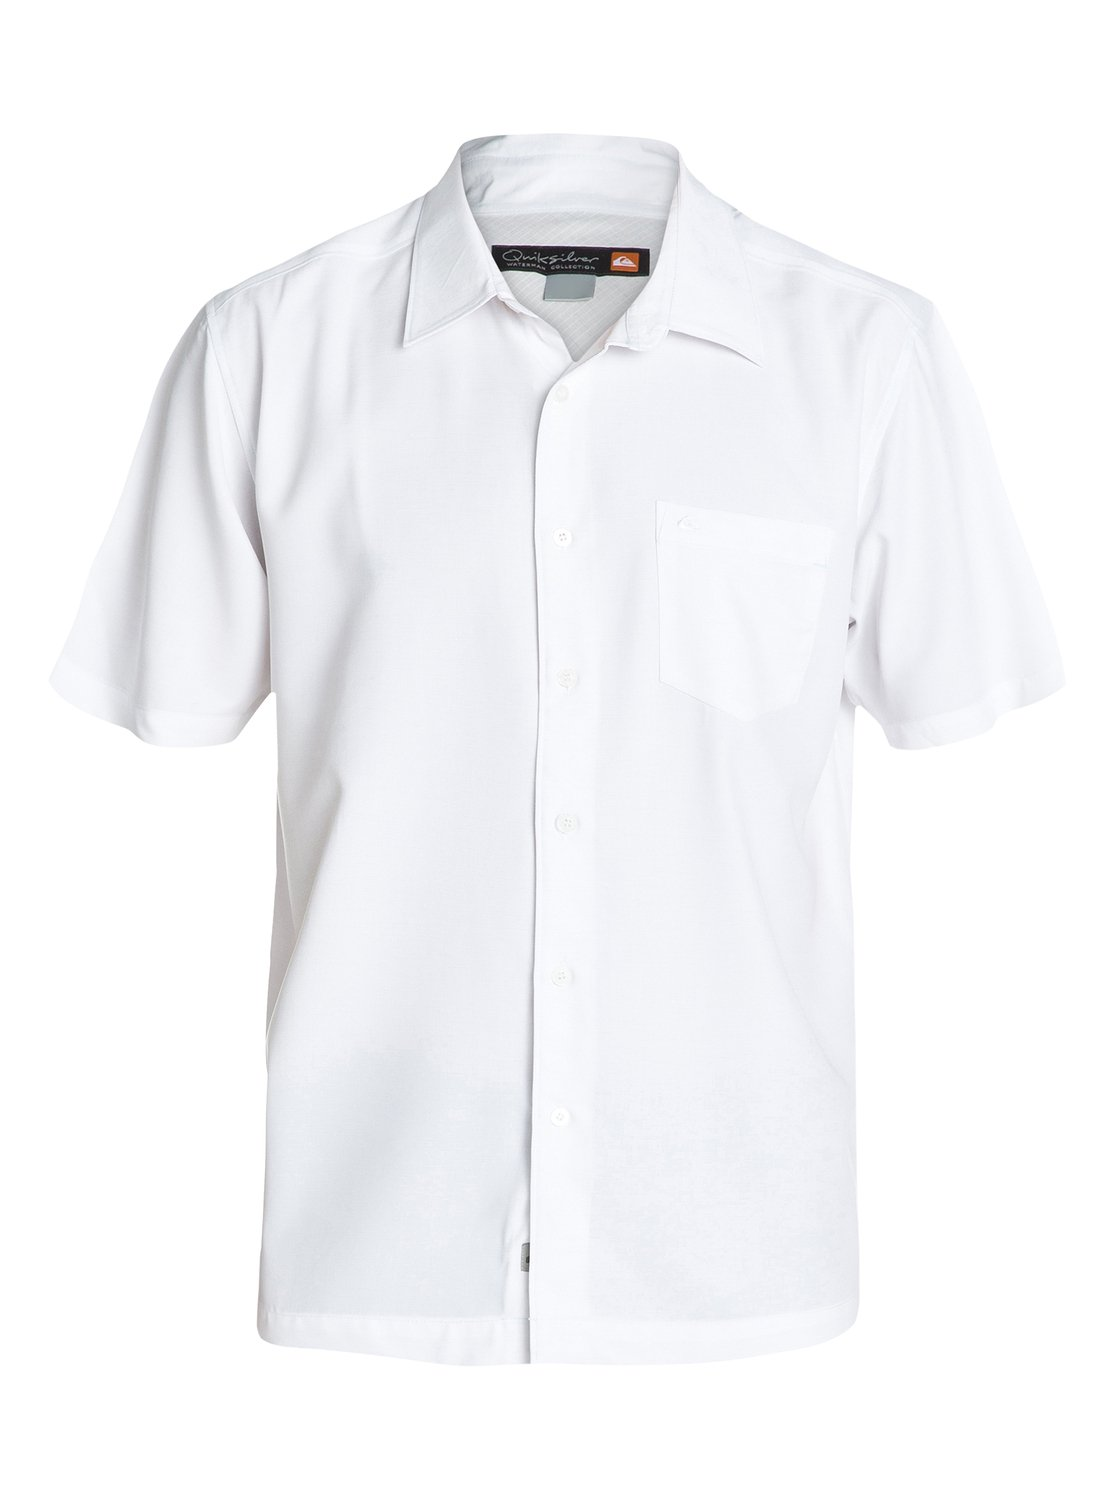 cf0ec9b29eb Gucci Mens Dress Shirt Ebay